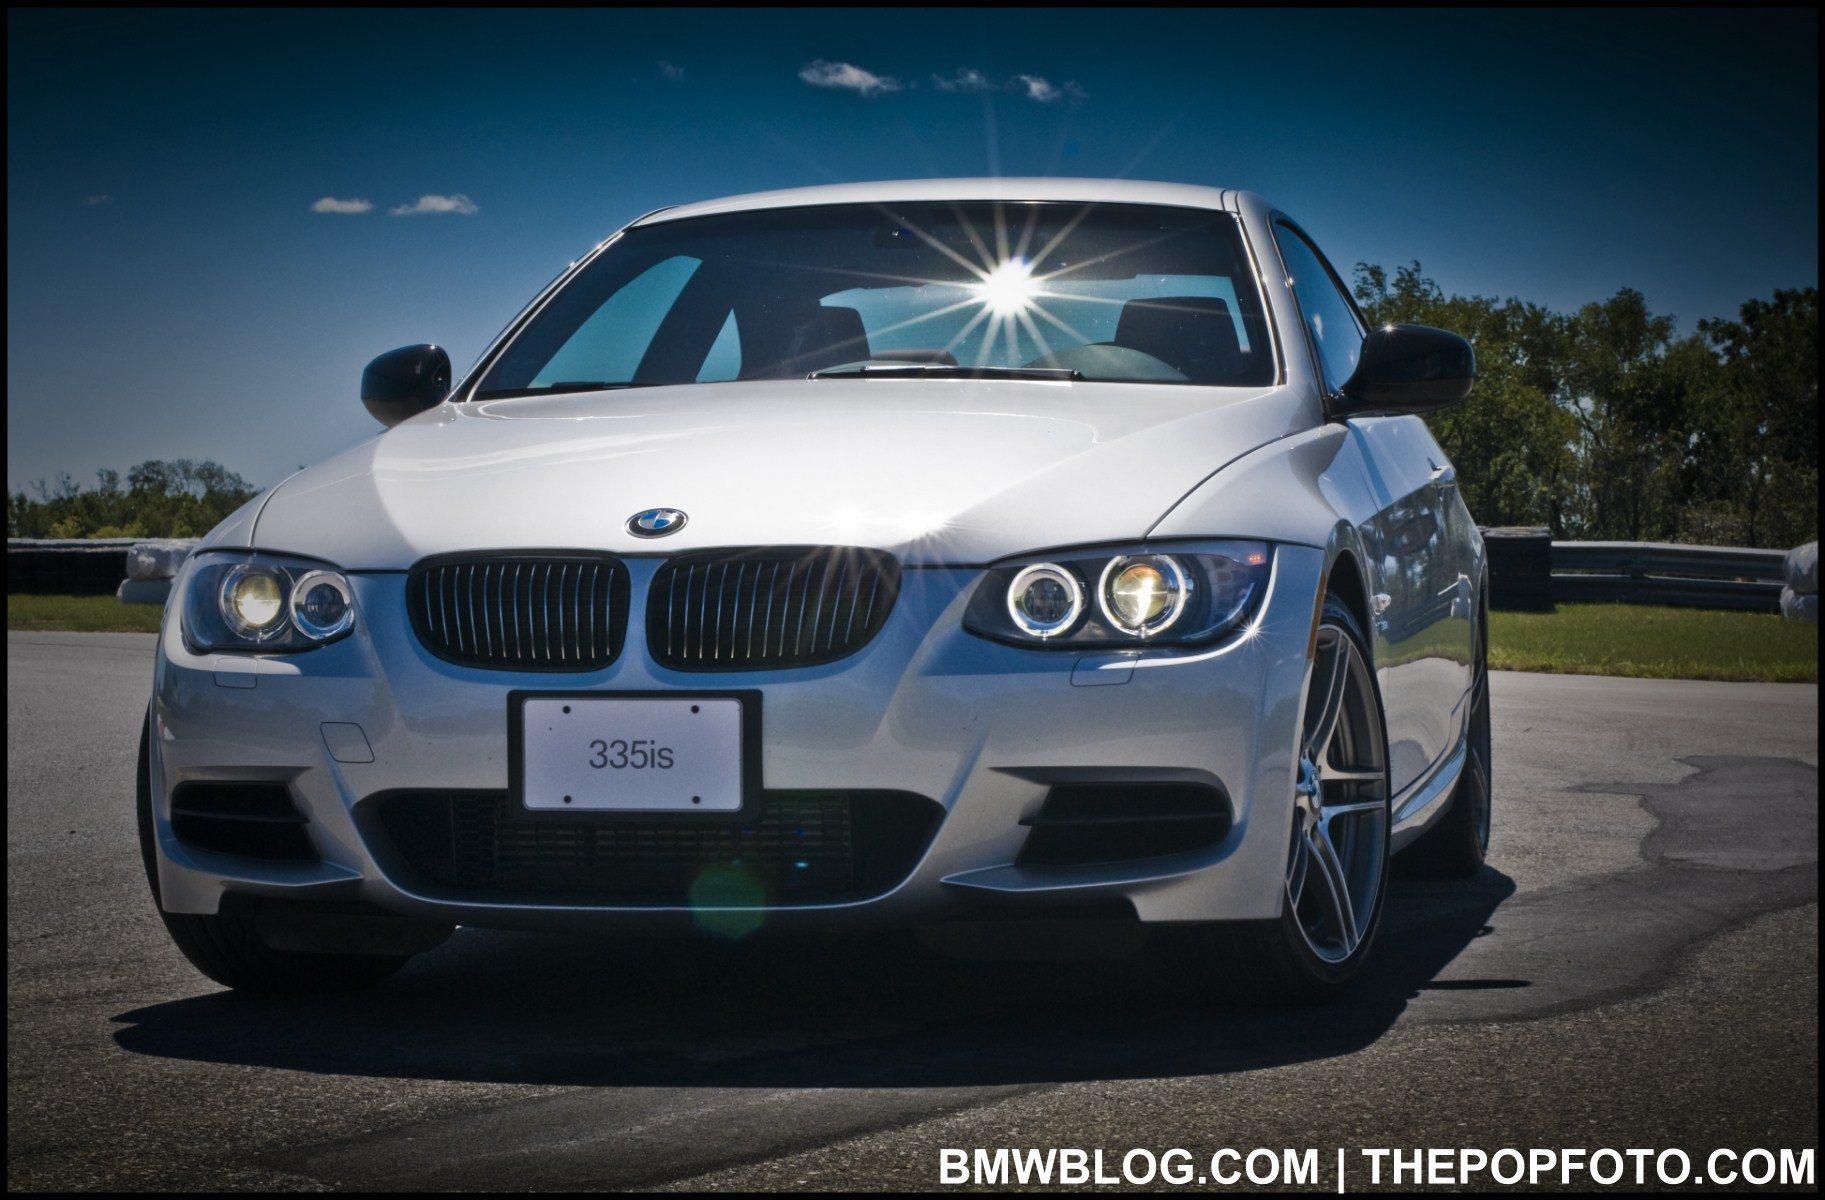 2010 bmw 335is review 32